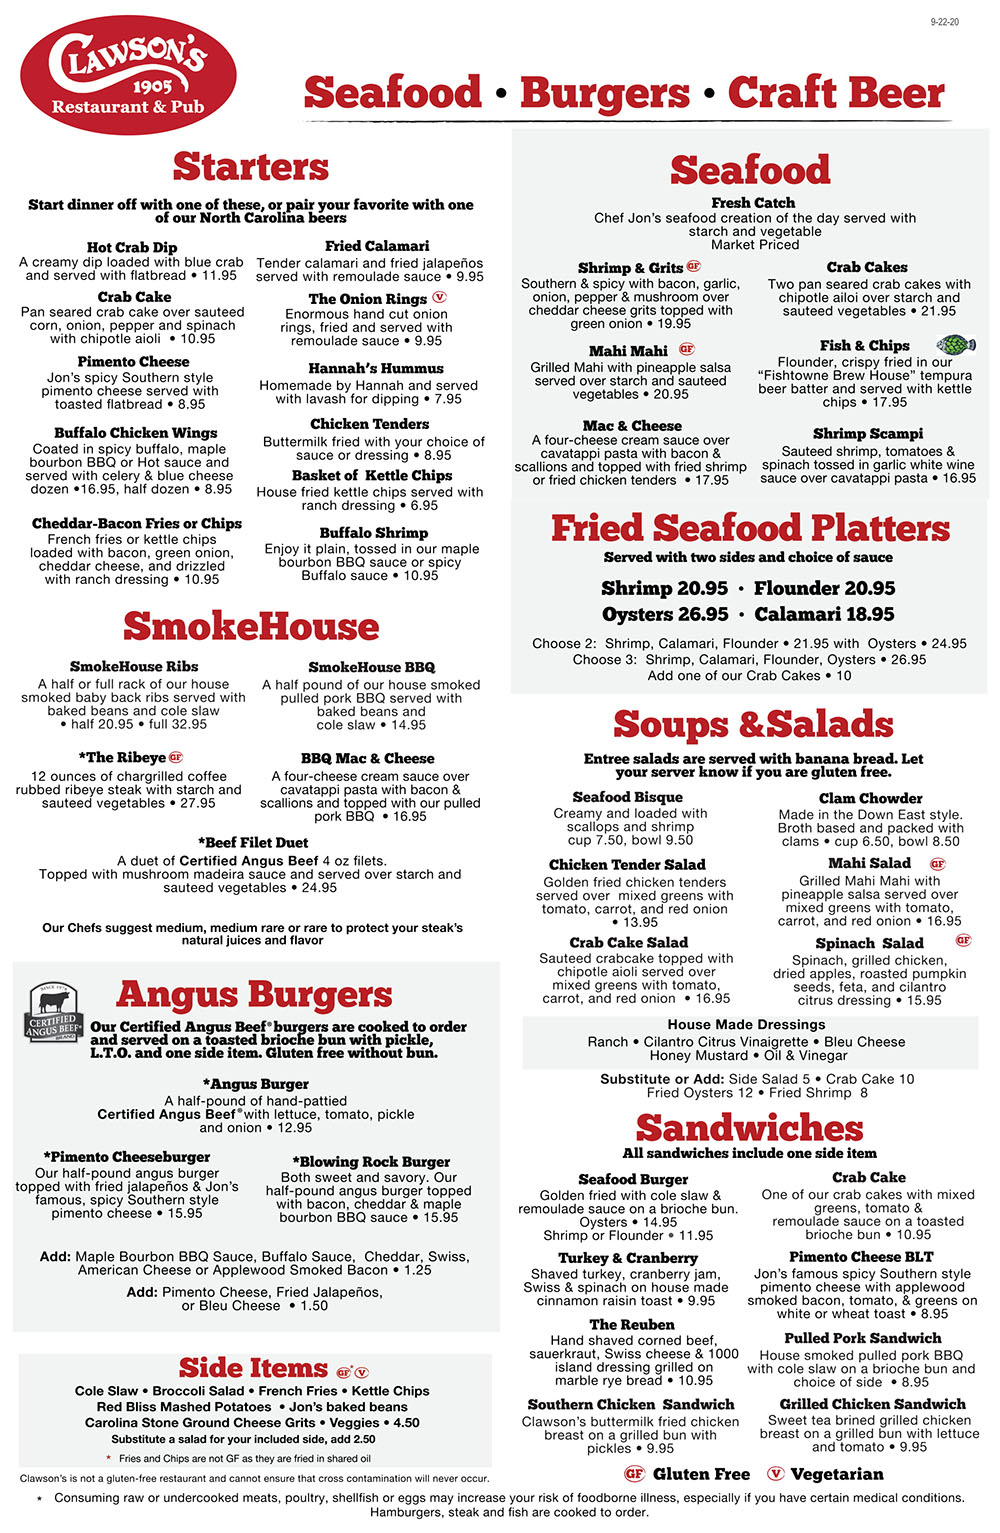 Claw 9-24-20 combined Menu-1